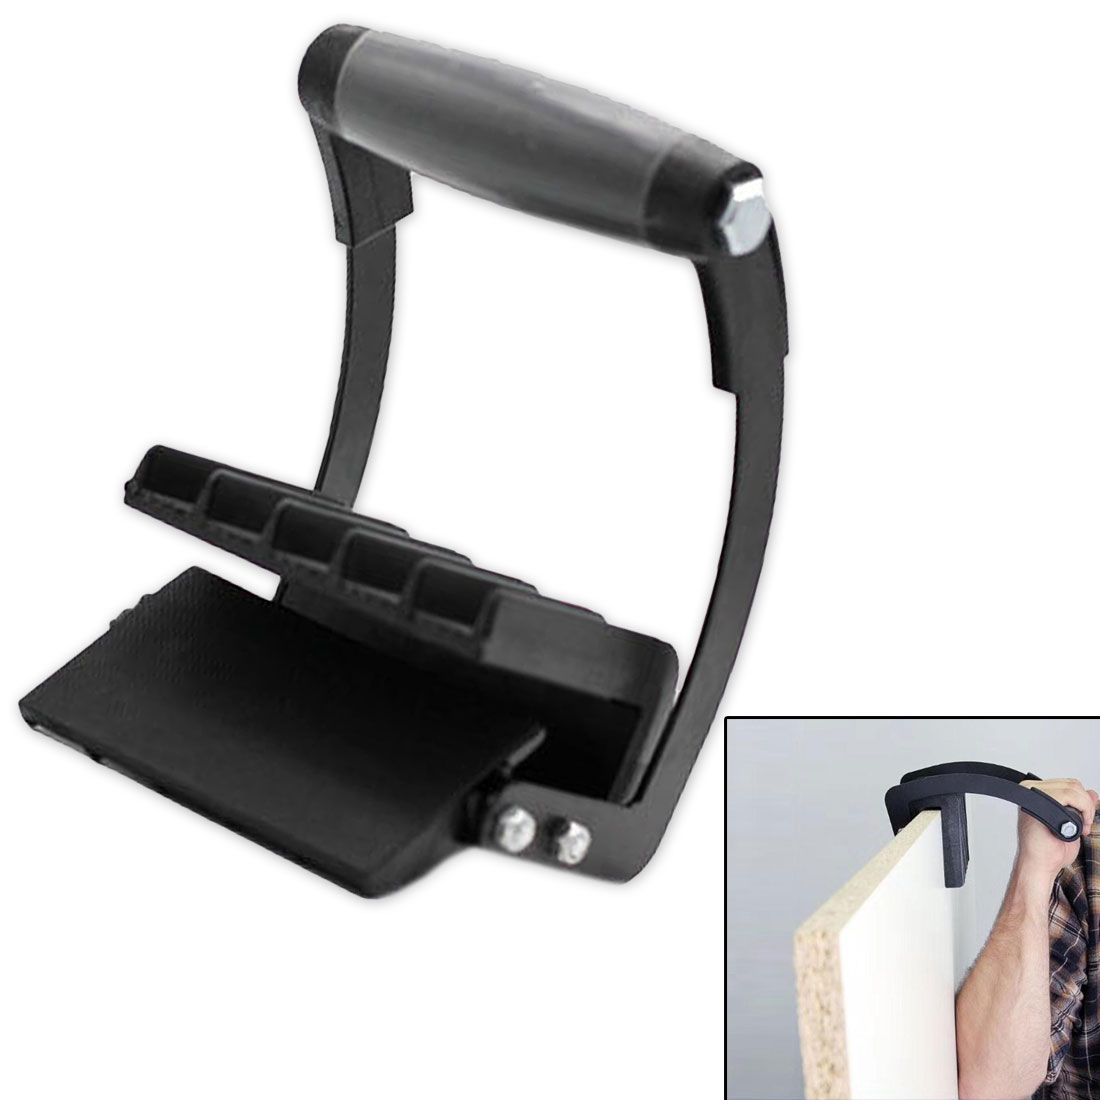 1pcs Special Home Tool Panel Carrier Plywood Carrier System Handy Grip Wood Board Lifter Easy Free Hand